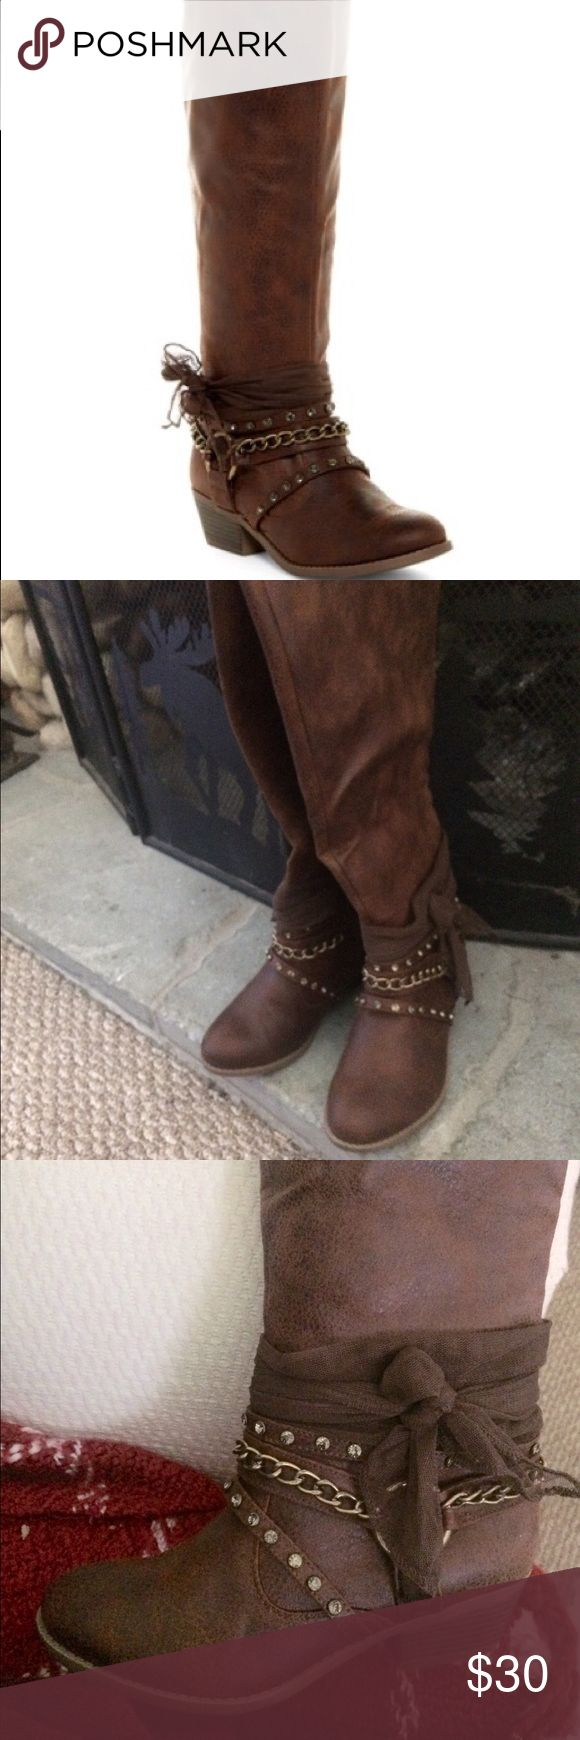 "🐴 🤠 THE CUTEST NOT RATED BRAND BROWN BOOTS! THE DETAIL ON THESE BOOTS ARE SO CUTE! THEY ARE PLEATHER BUT LOOK LIKE LEATHER. BRAND NEW IN BOX NEVER WORN 2"" HEEL. SUPER COMFY!  I WEAR A 7 AND THESE ARE JUST RIGHT WITH A THICK SOCK.  VERY COMFY! ☀️ Not Rated Shoes"